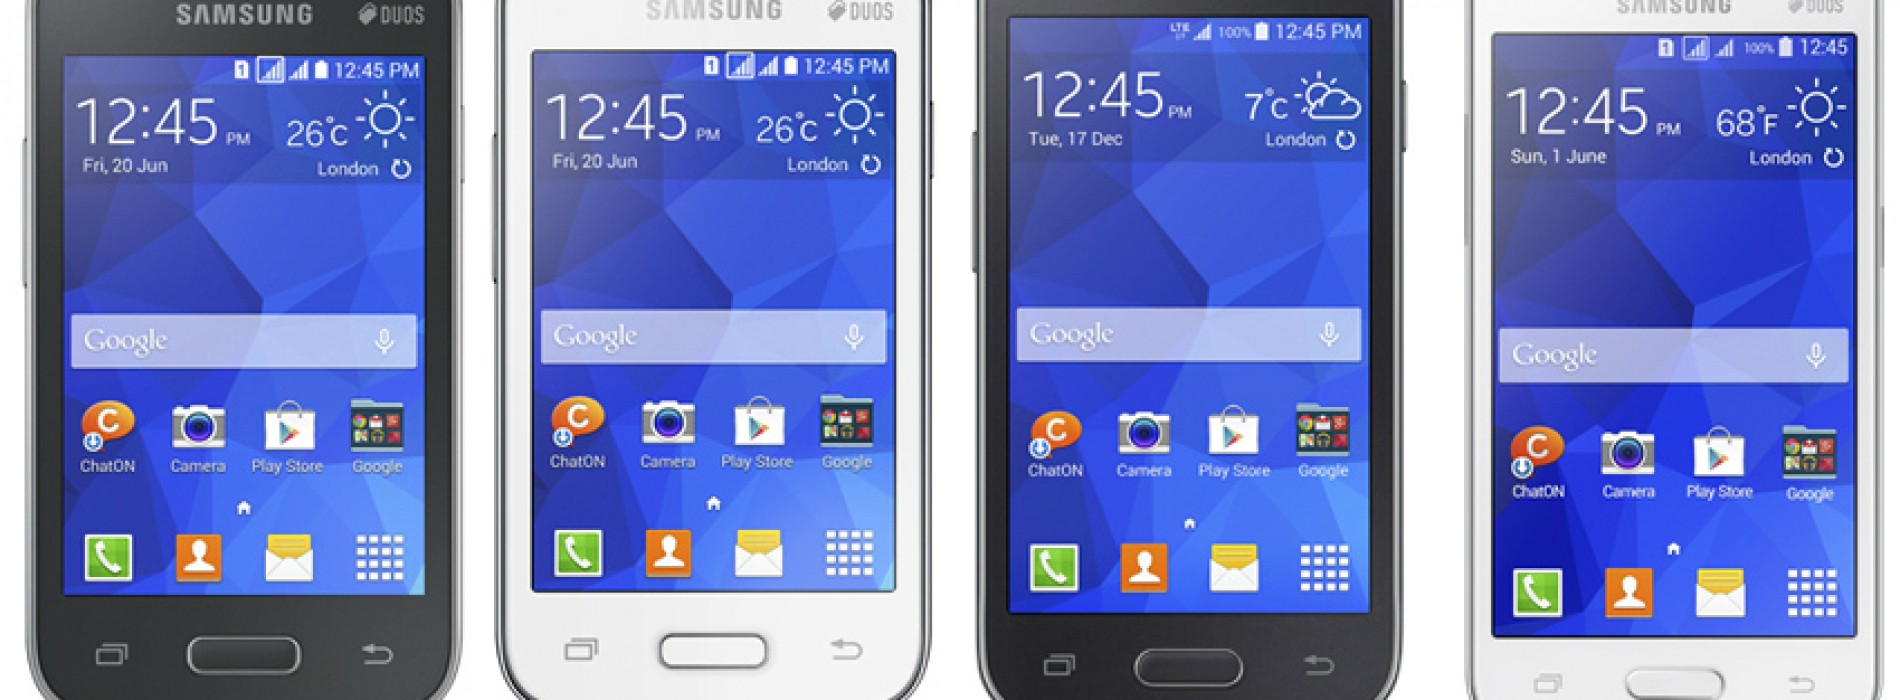 Samsung intros four budget KitKat smartphones for international markets